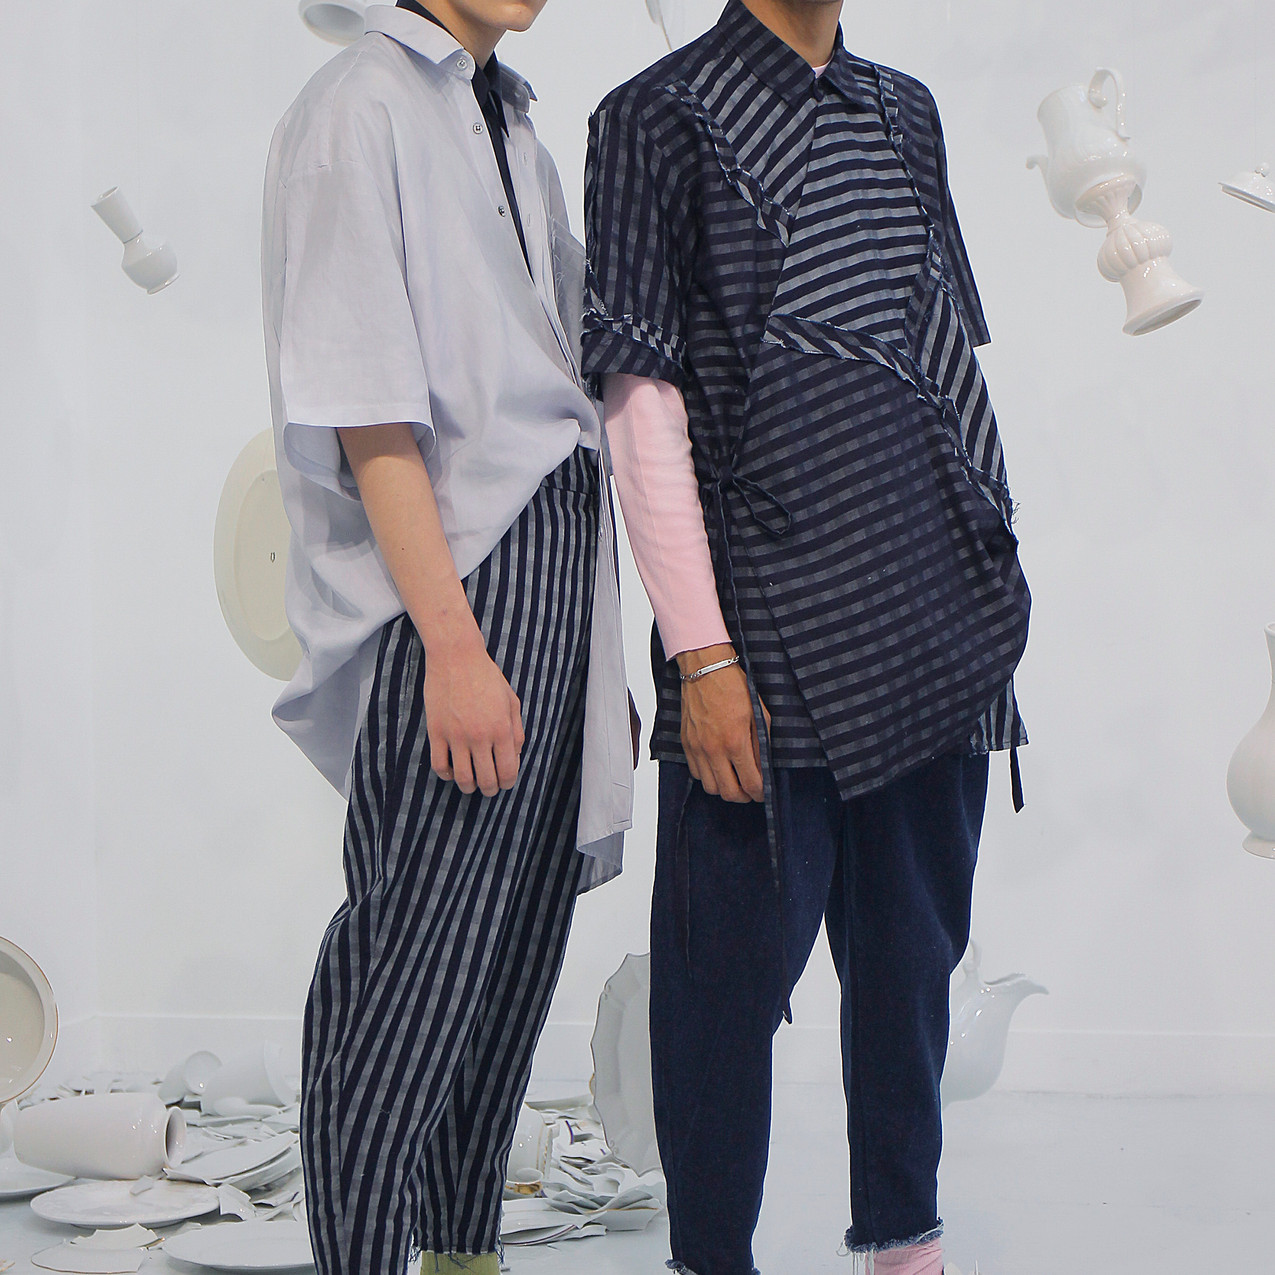 SS19 Collection. Photo courtesy L'appart PR.